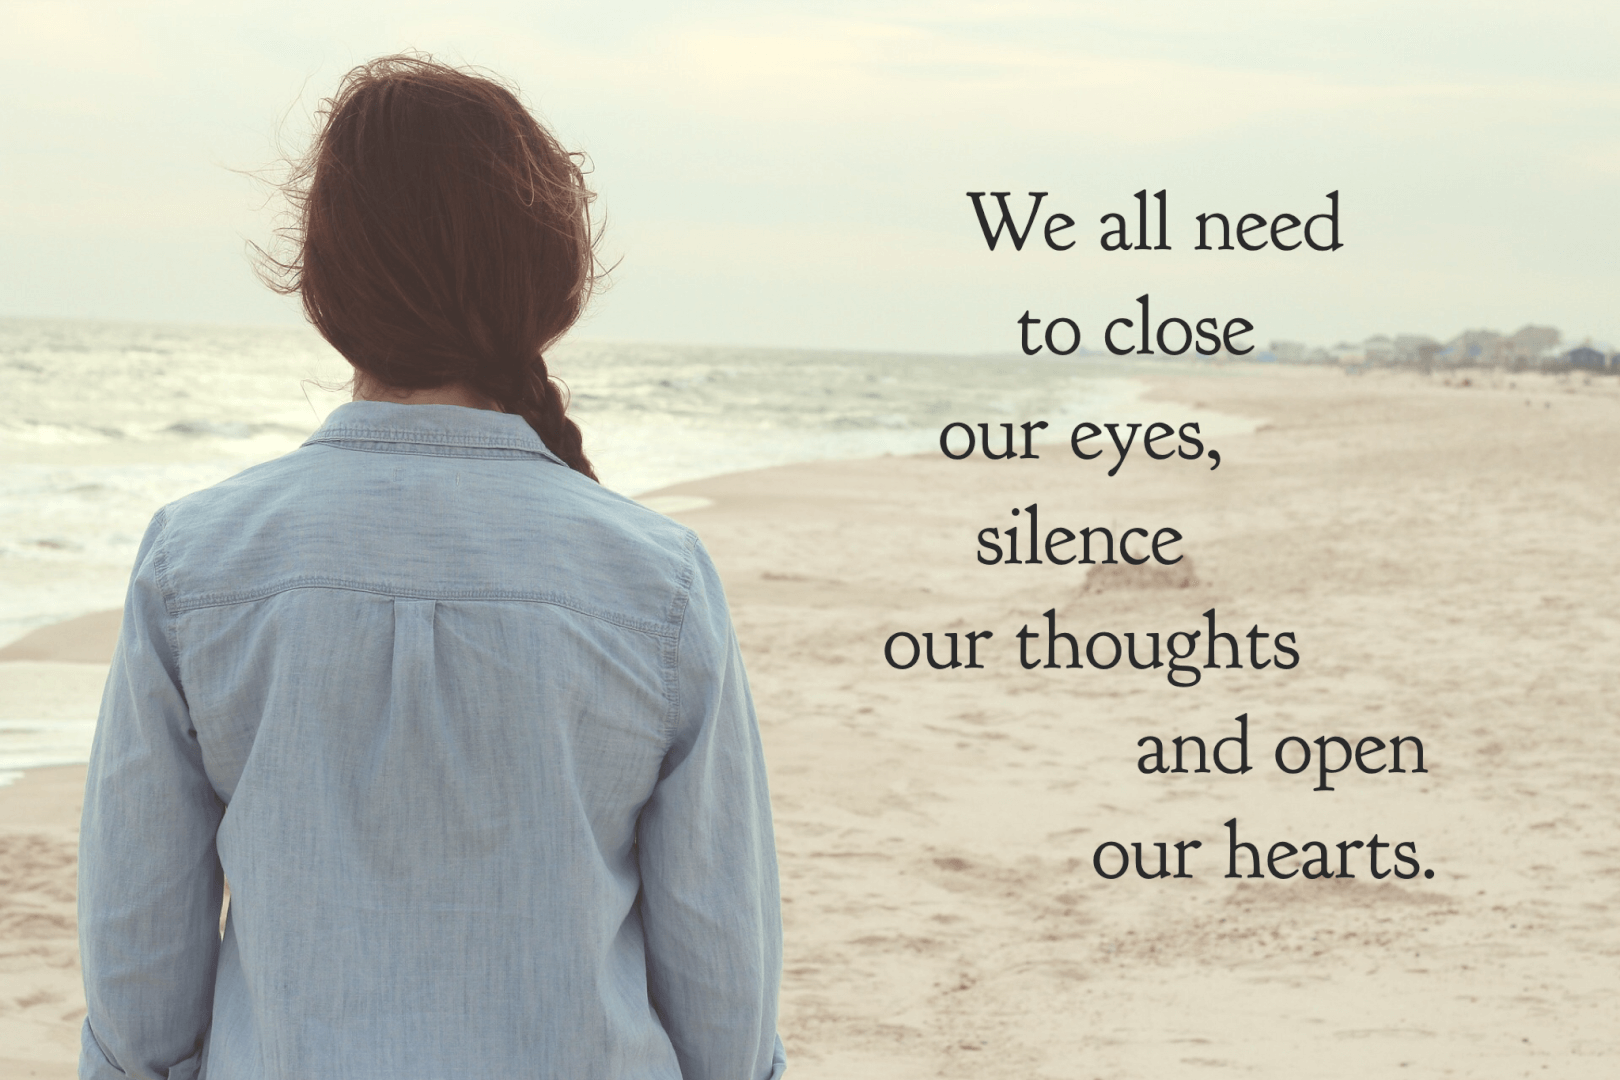 We all need to close our eyes, silence our thoughts and open our hearts